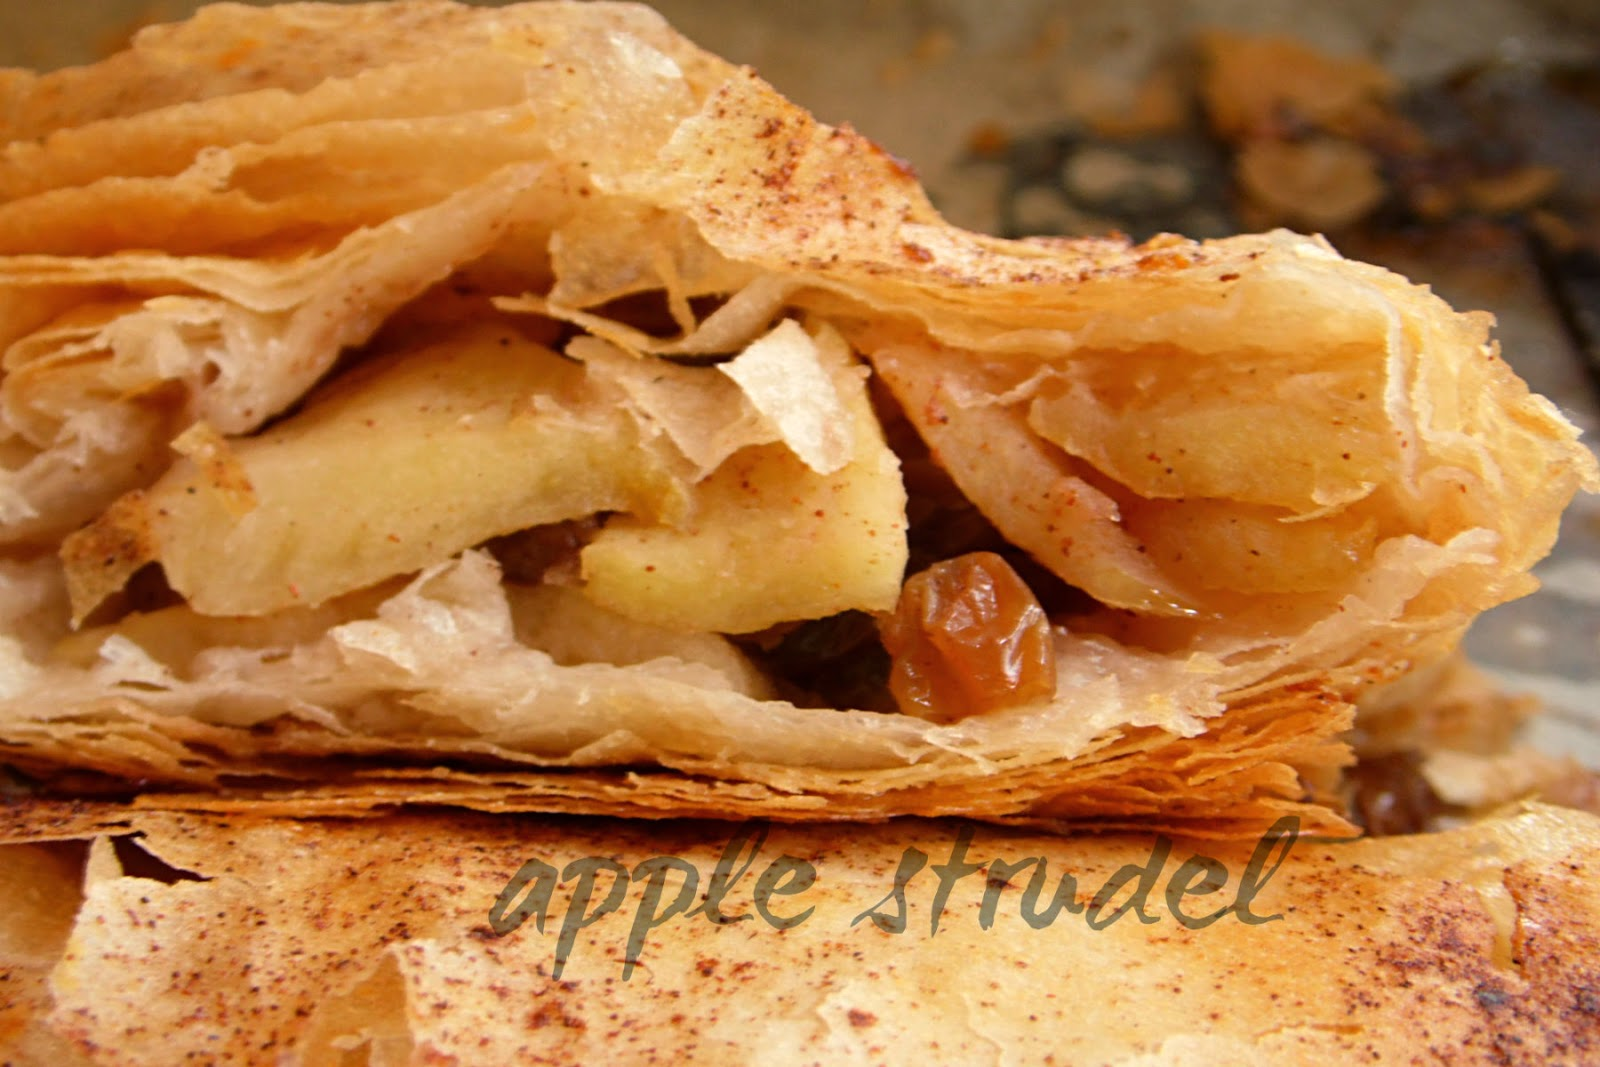 Cooking in Hungary: Easy Apple strudel using Phyllo (Filo ...